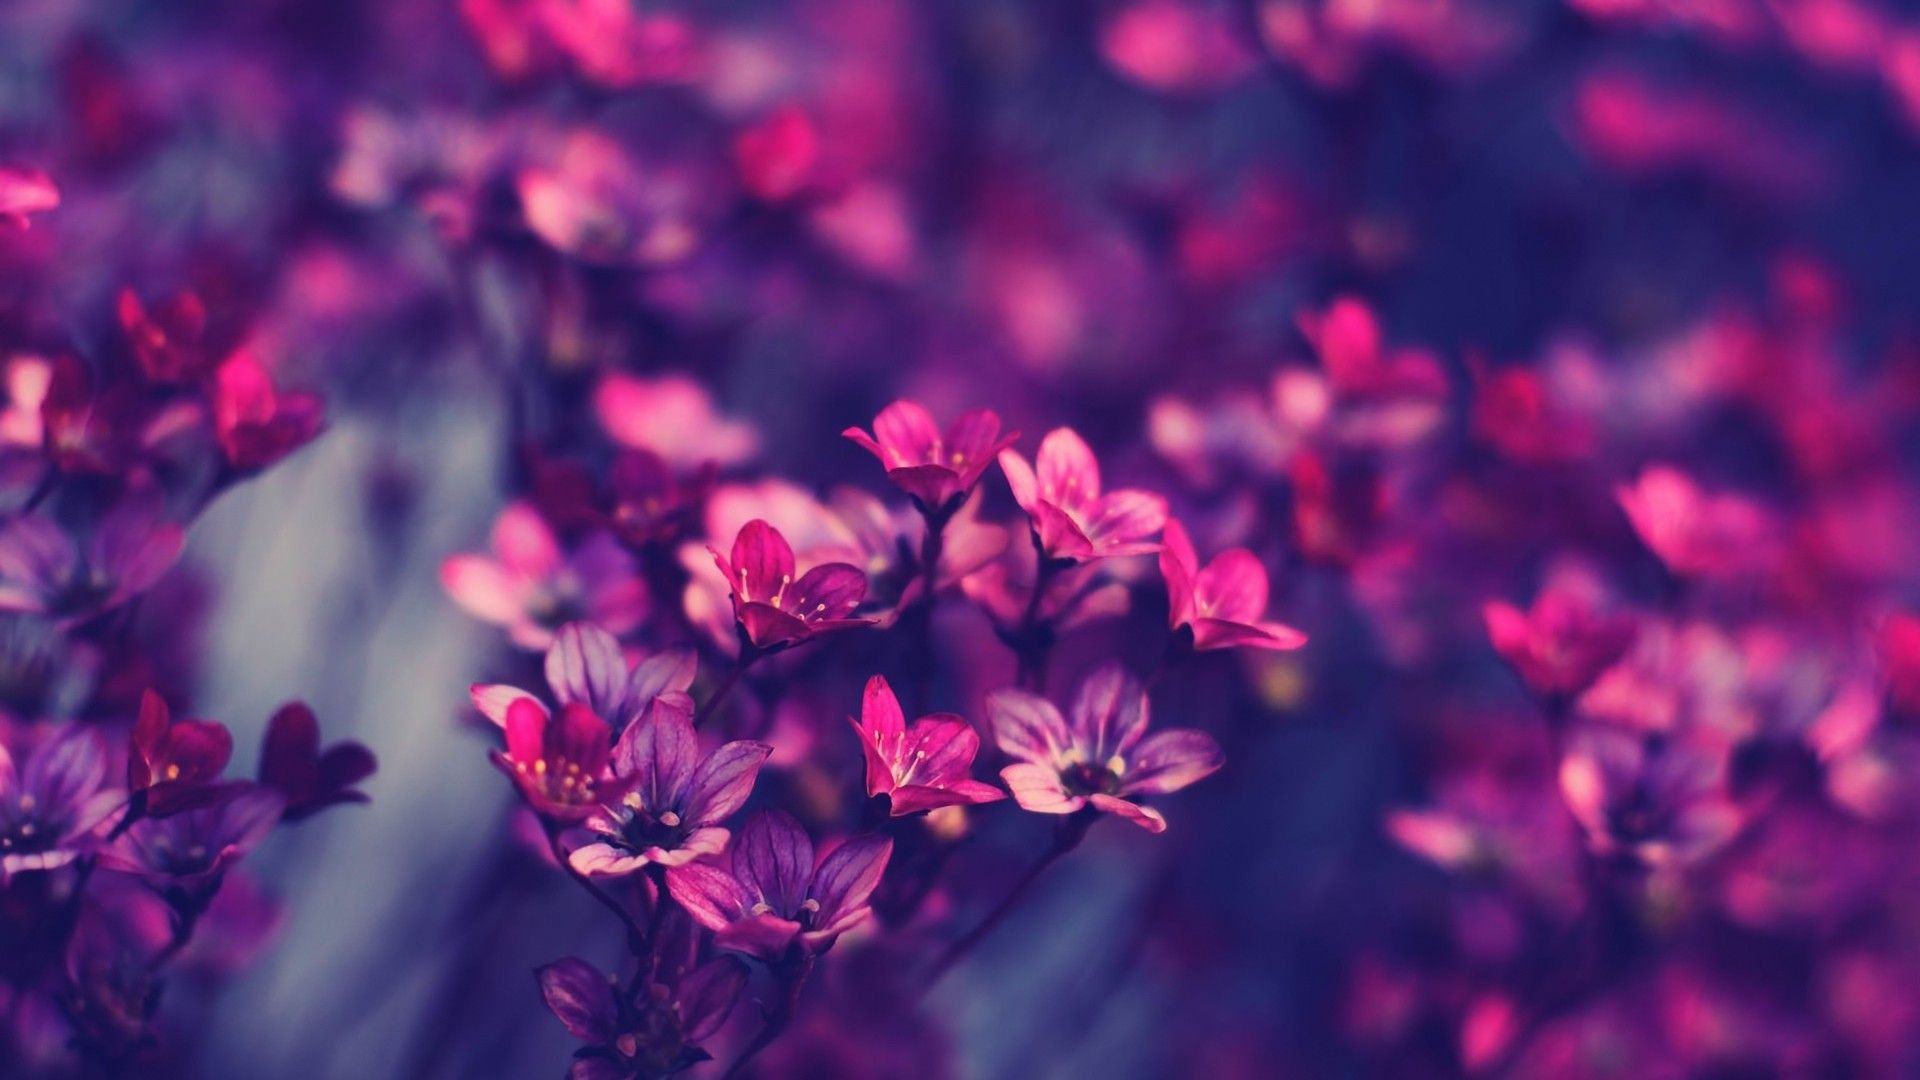 Desktop flowers wallpaper full screen hd wallpaper download mightylinksfo